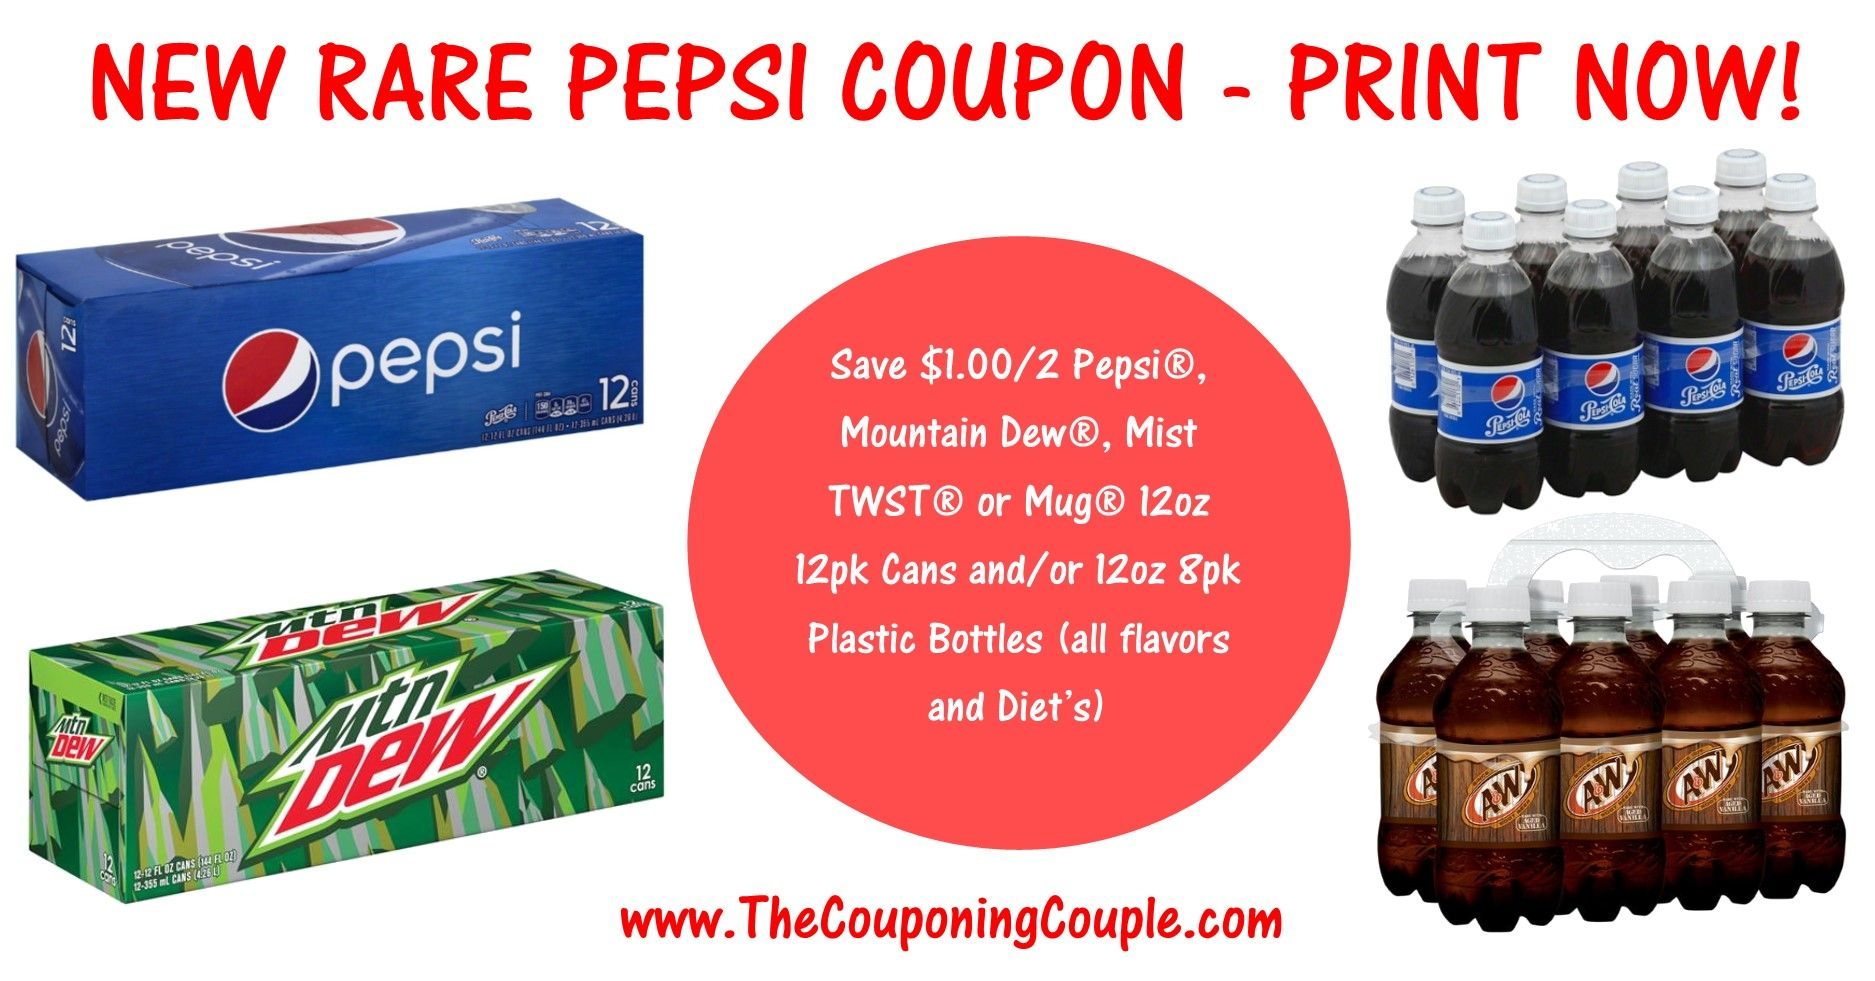 picture about Pepsi Printable Coupons titled Fresh new** Uncommon Pepsi Printable Coupon ~ PRINT At present! Retail store Commercials